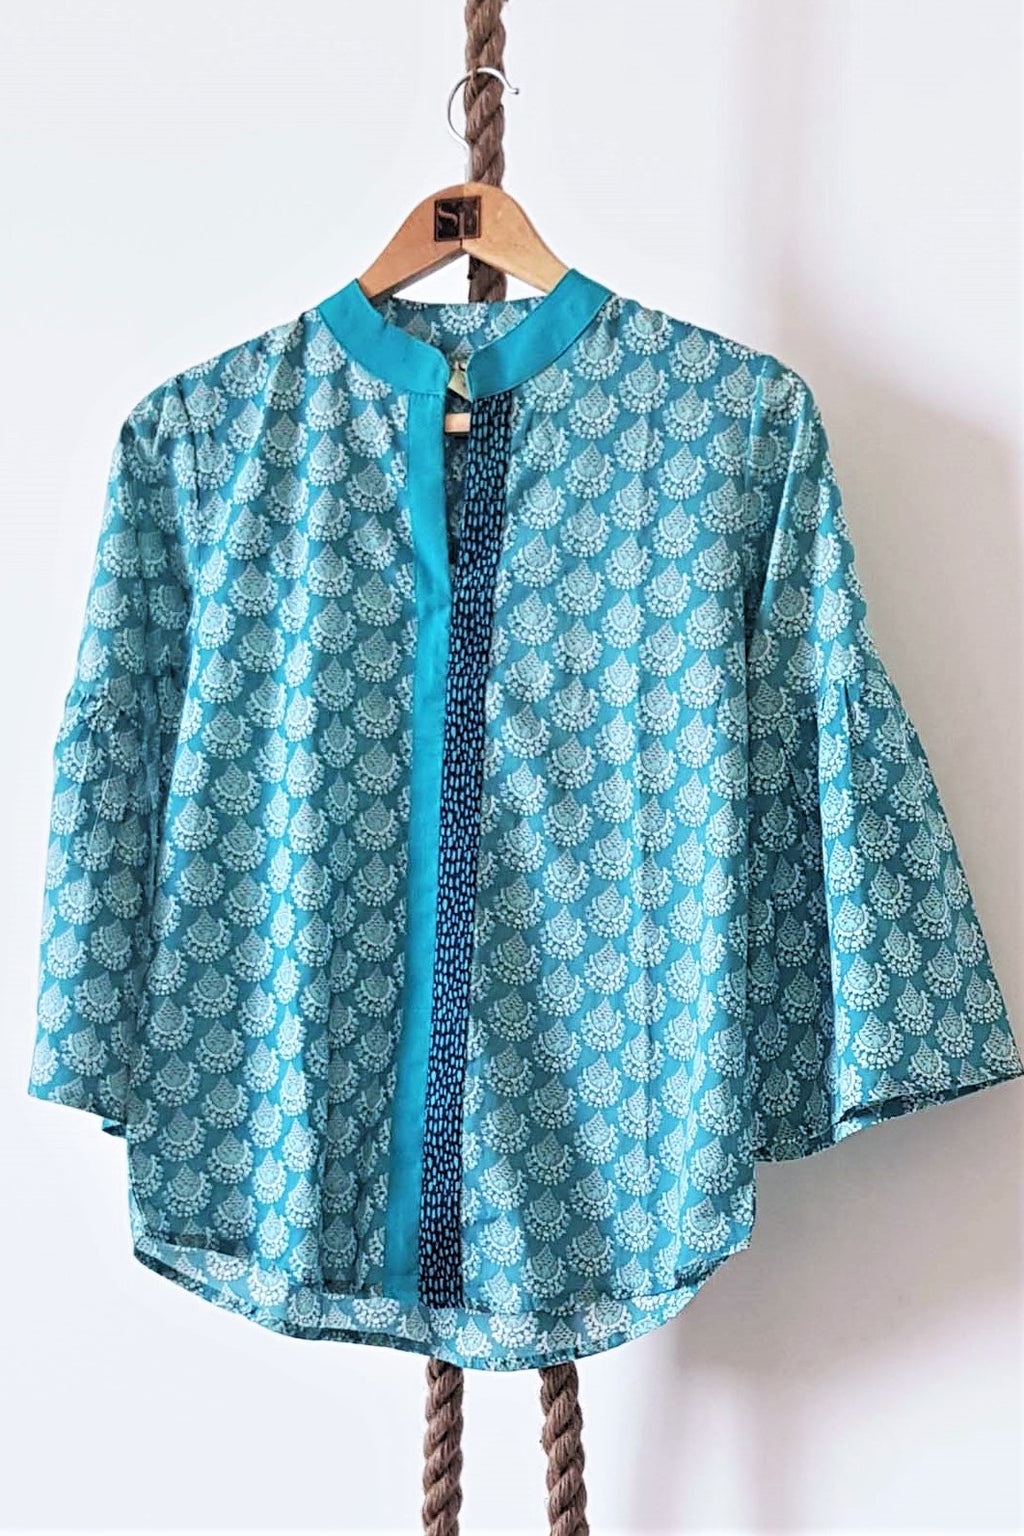 Women's Printed Cotton Top Marissa Teal- K1213MT